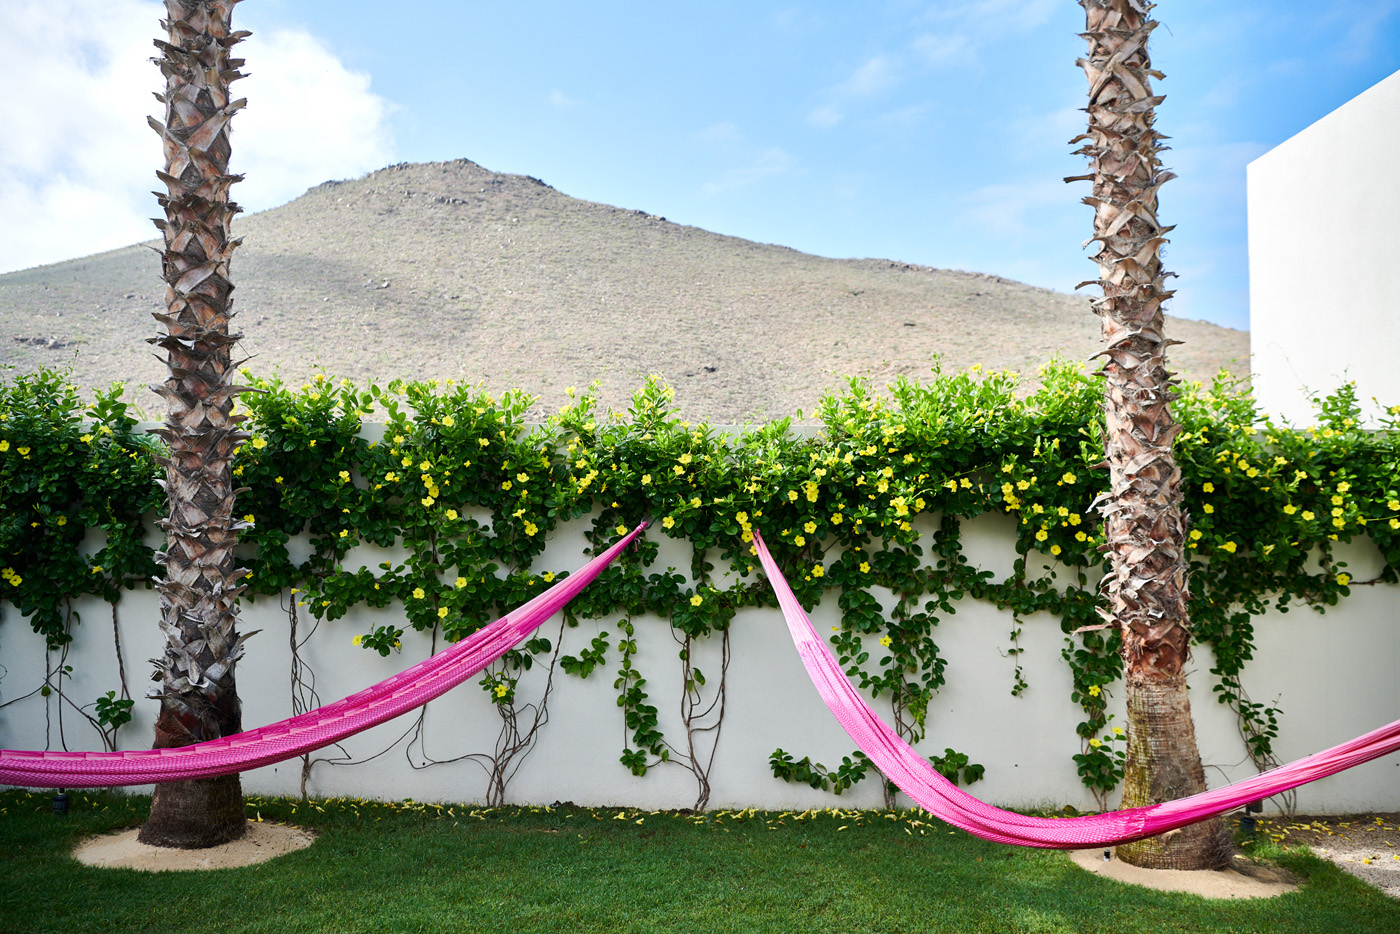 Hammocks in the garden with a view of the mountains